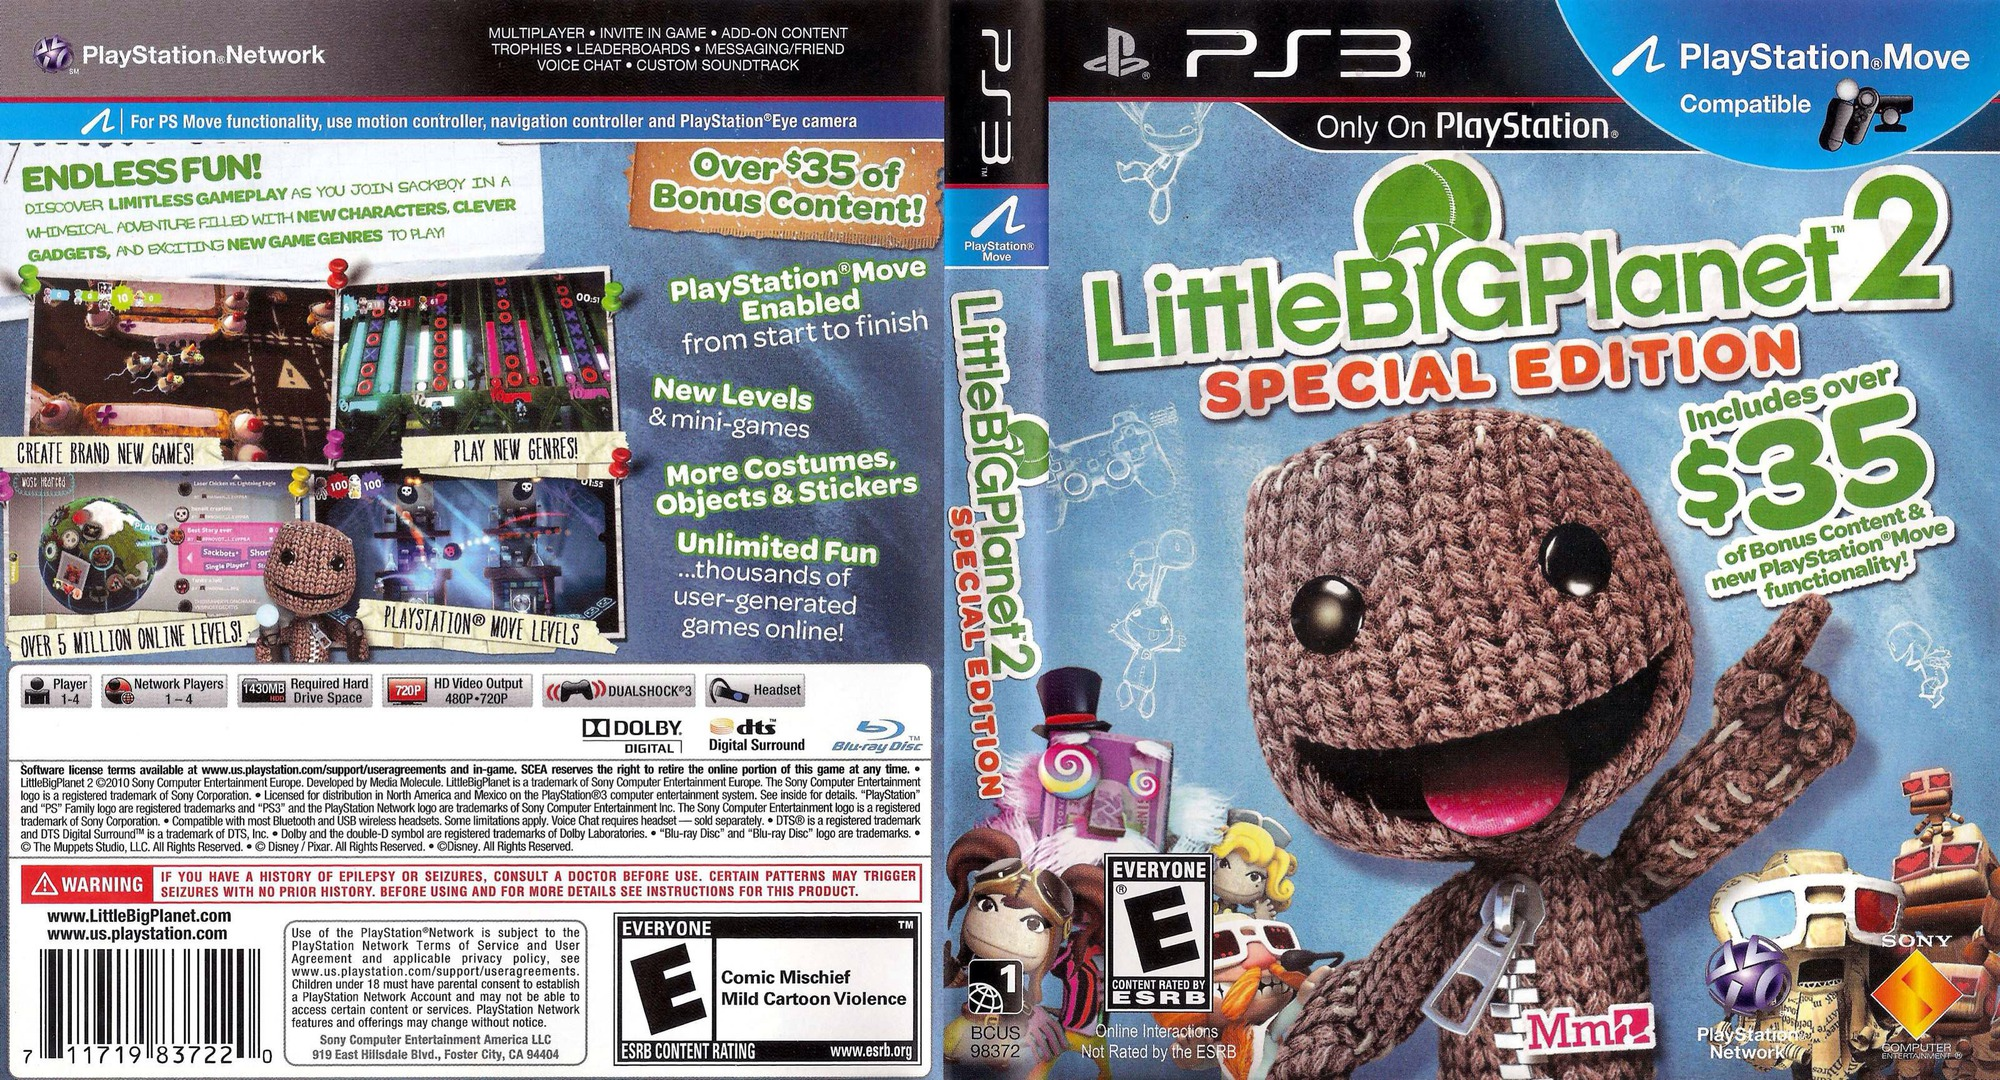 LittleBigPlanet 2 (Special Edition) PS3 coverfullHQ (BCUS98372)